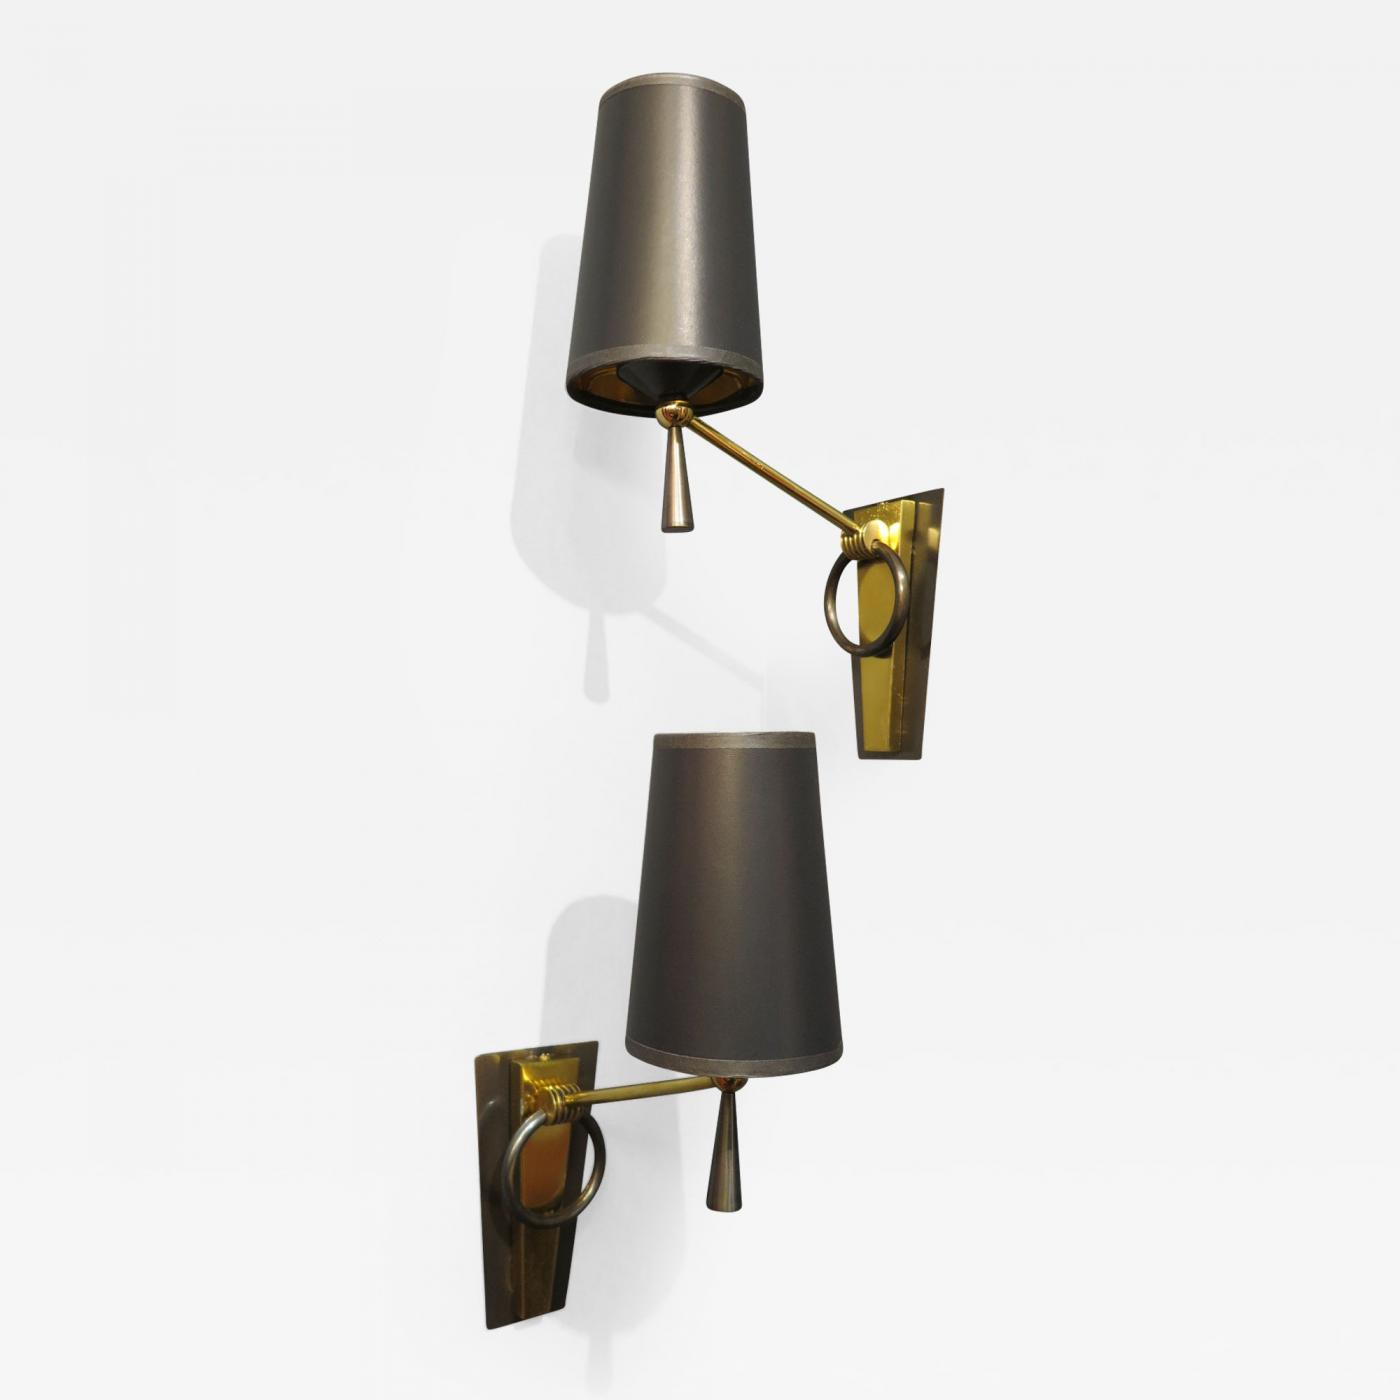 Listings / Furniture / Lighting / Wall Lights and Sconces & Maison Arlus - Pair of French Mid Century Sconces